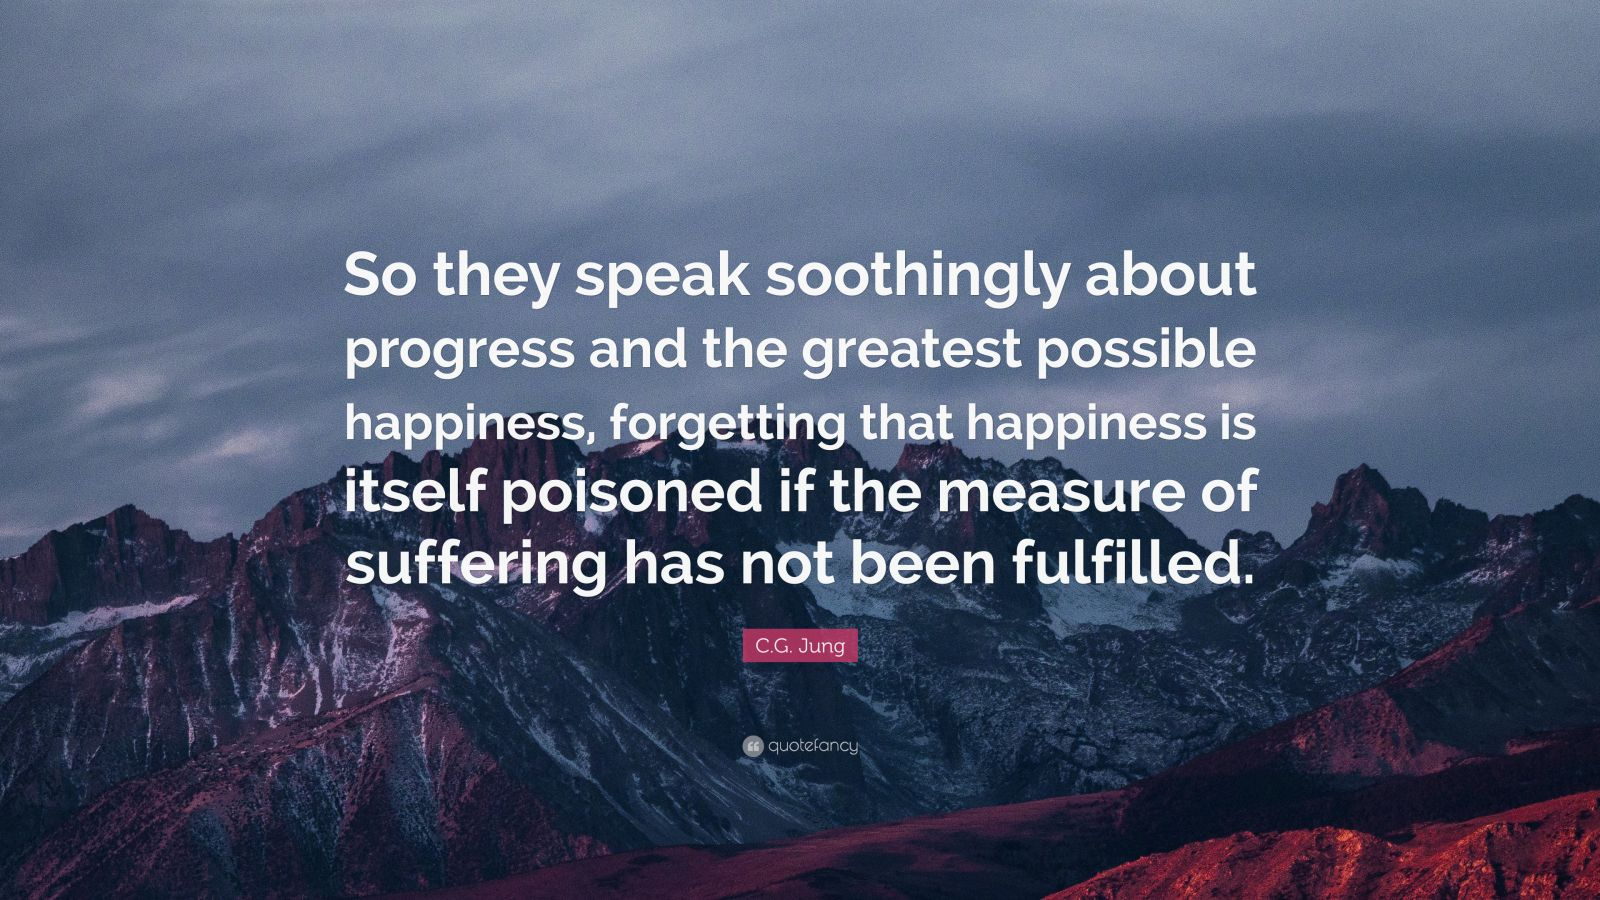 """C.G. Jung Quote: """"So they speak soothingly about progress and the greatest possible happiness, forgetting that happiness is itself poisoned if the measure of suffering has not been fulfilled."""""""